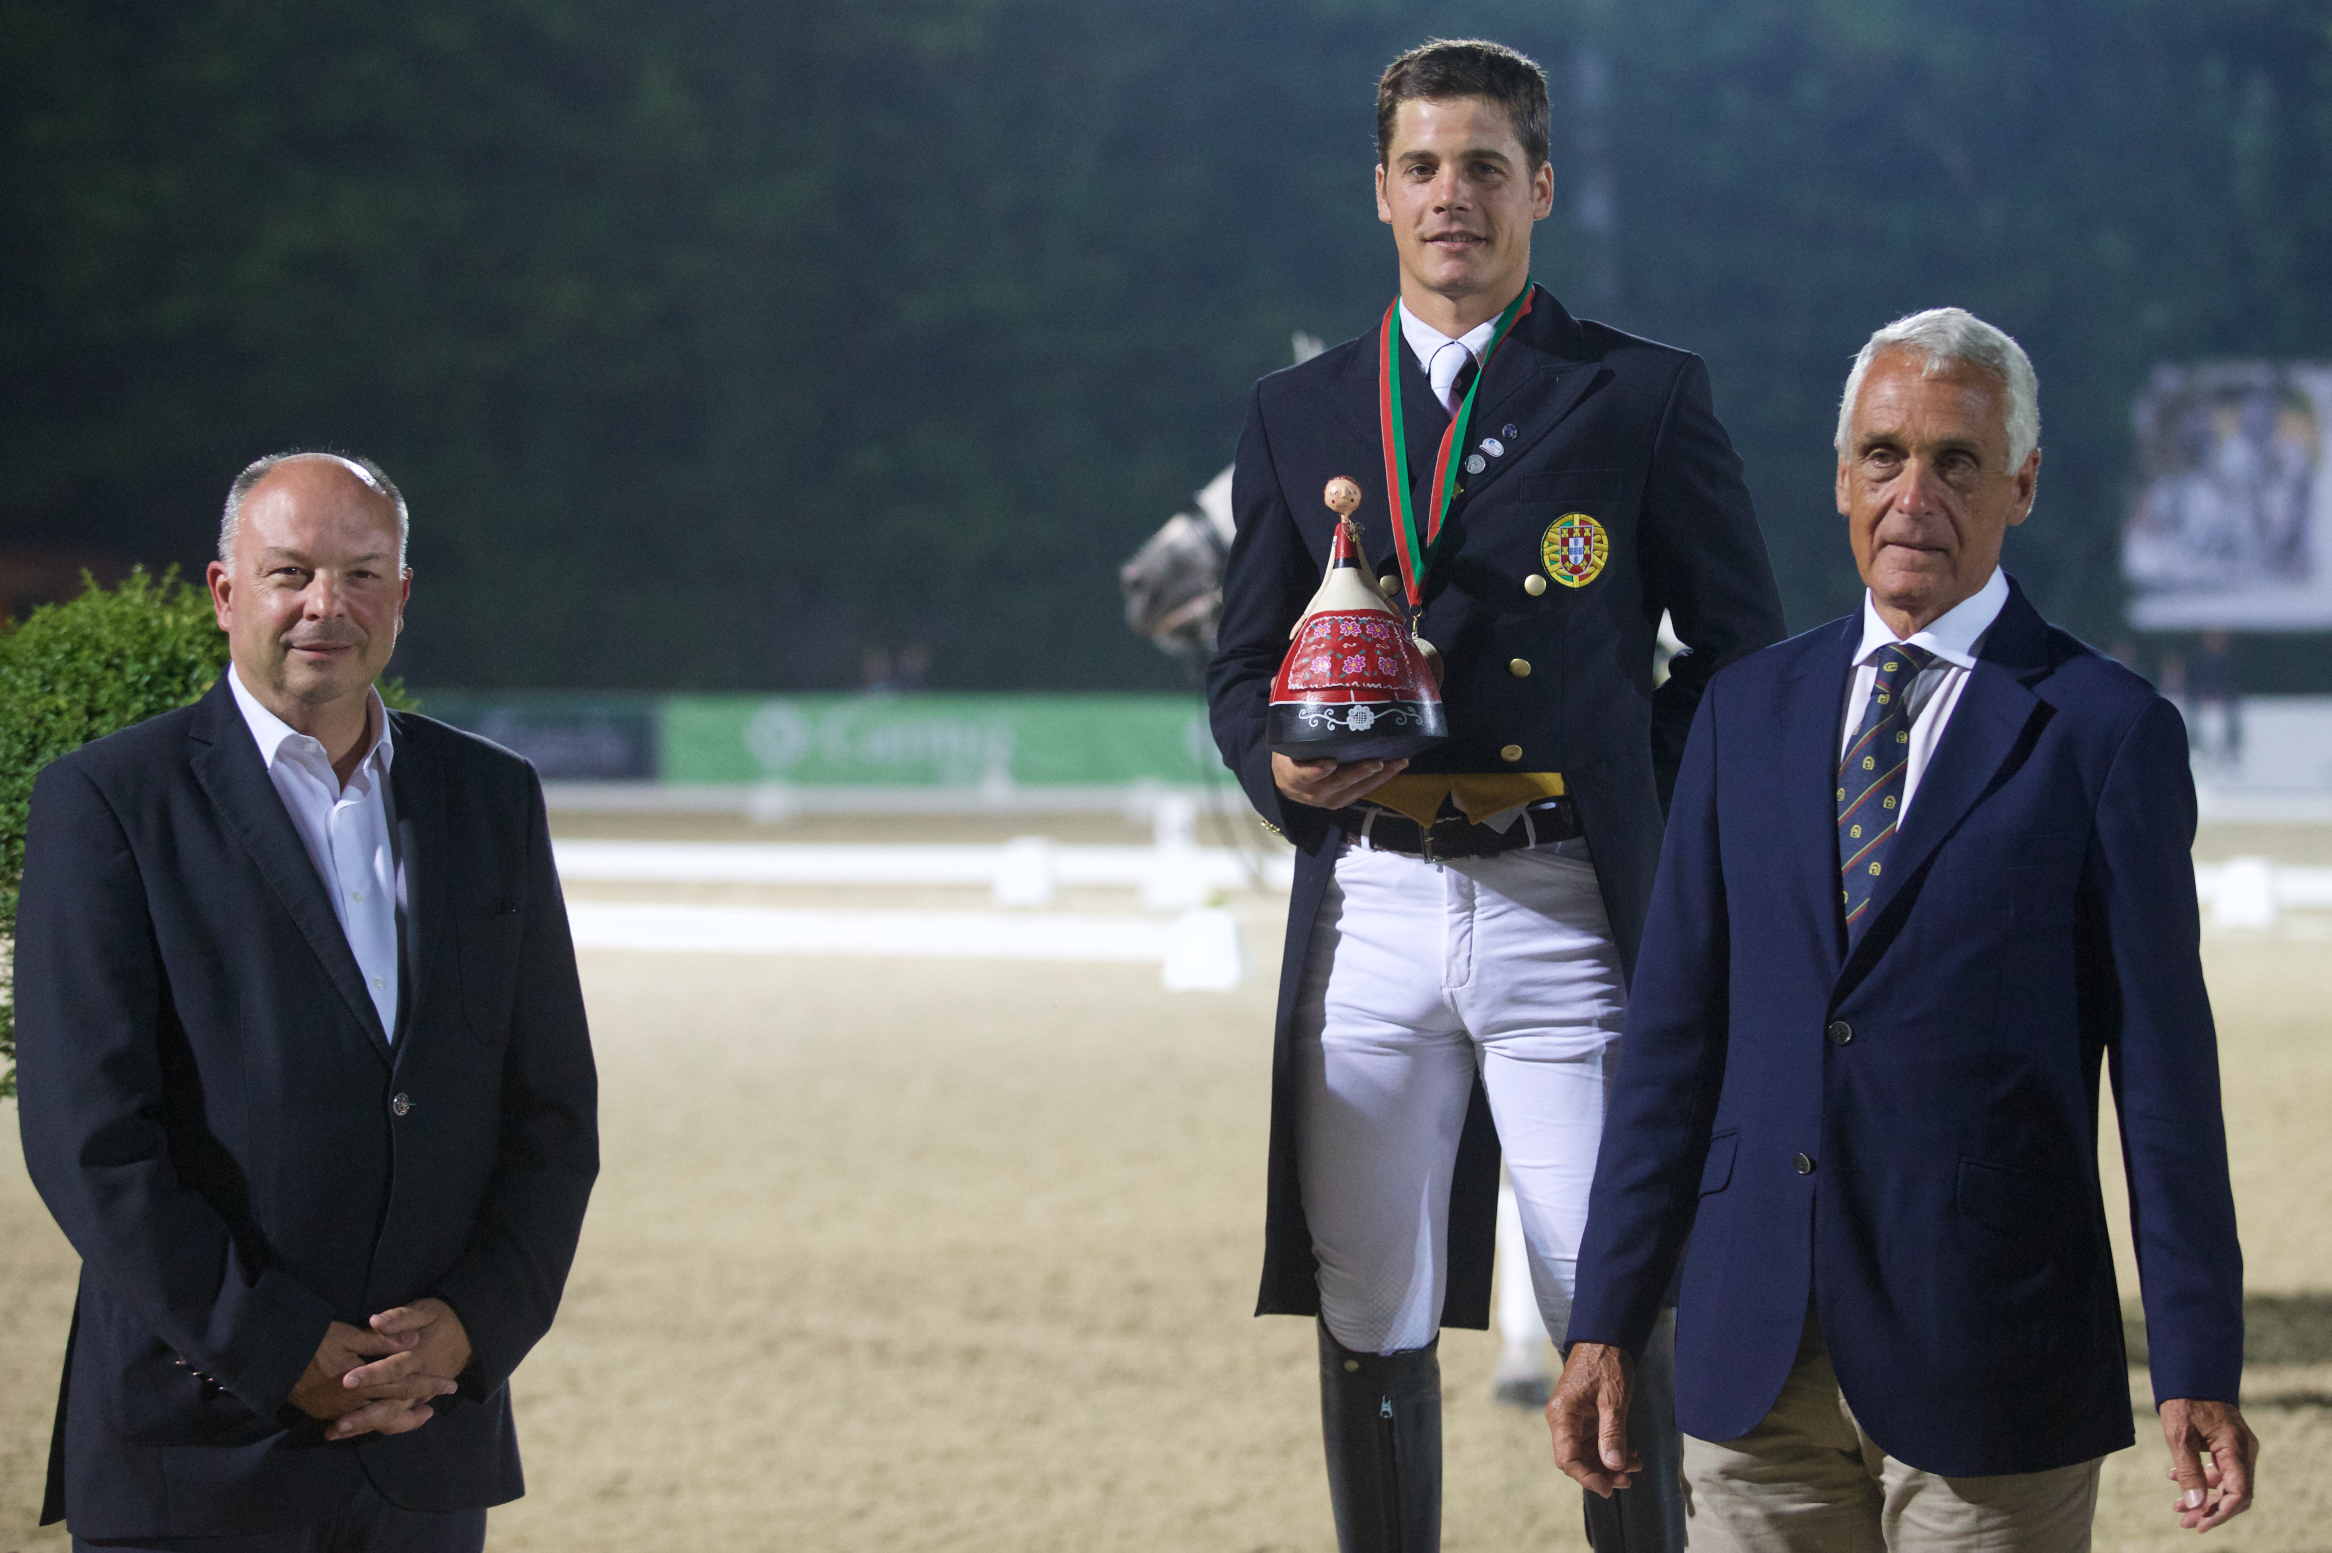 Bariloche & Vasco vice-champions of dressage